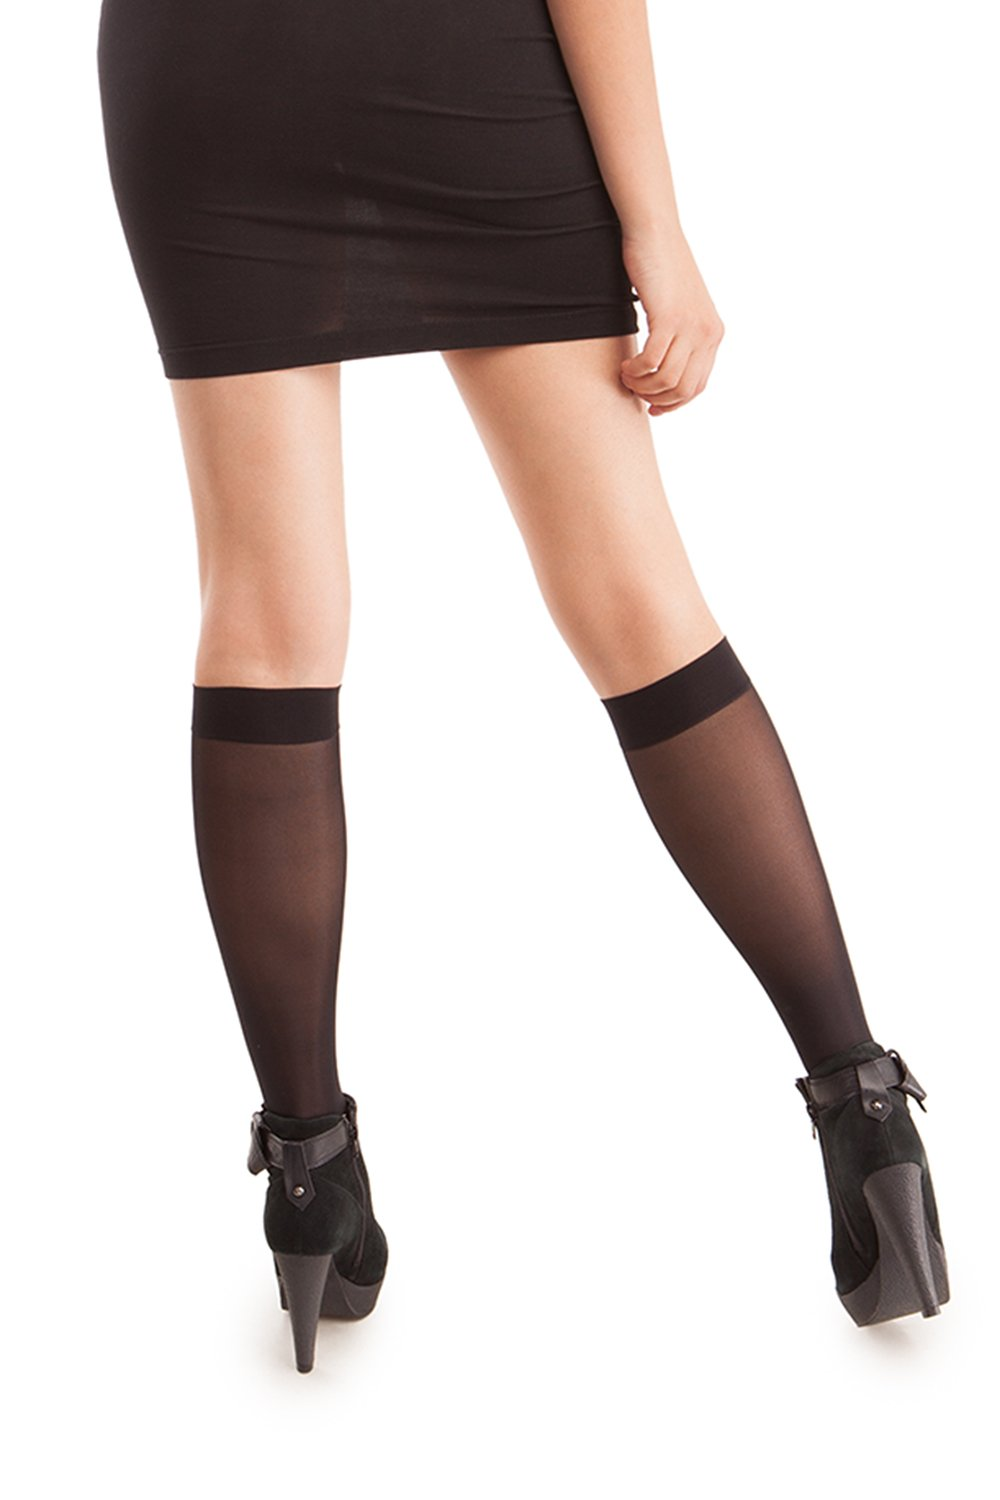 Sheer Knee Highs - Graduated Firm Compression: 23-30 mmHG (H-180)